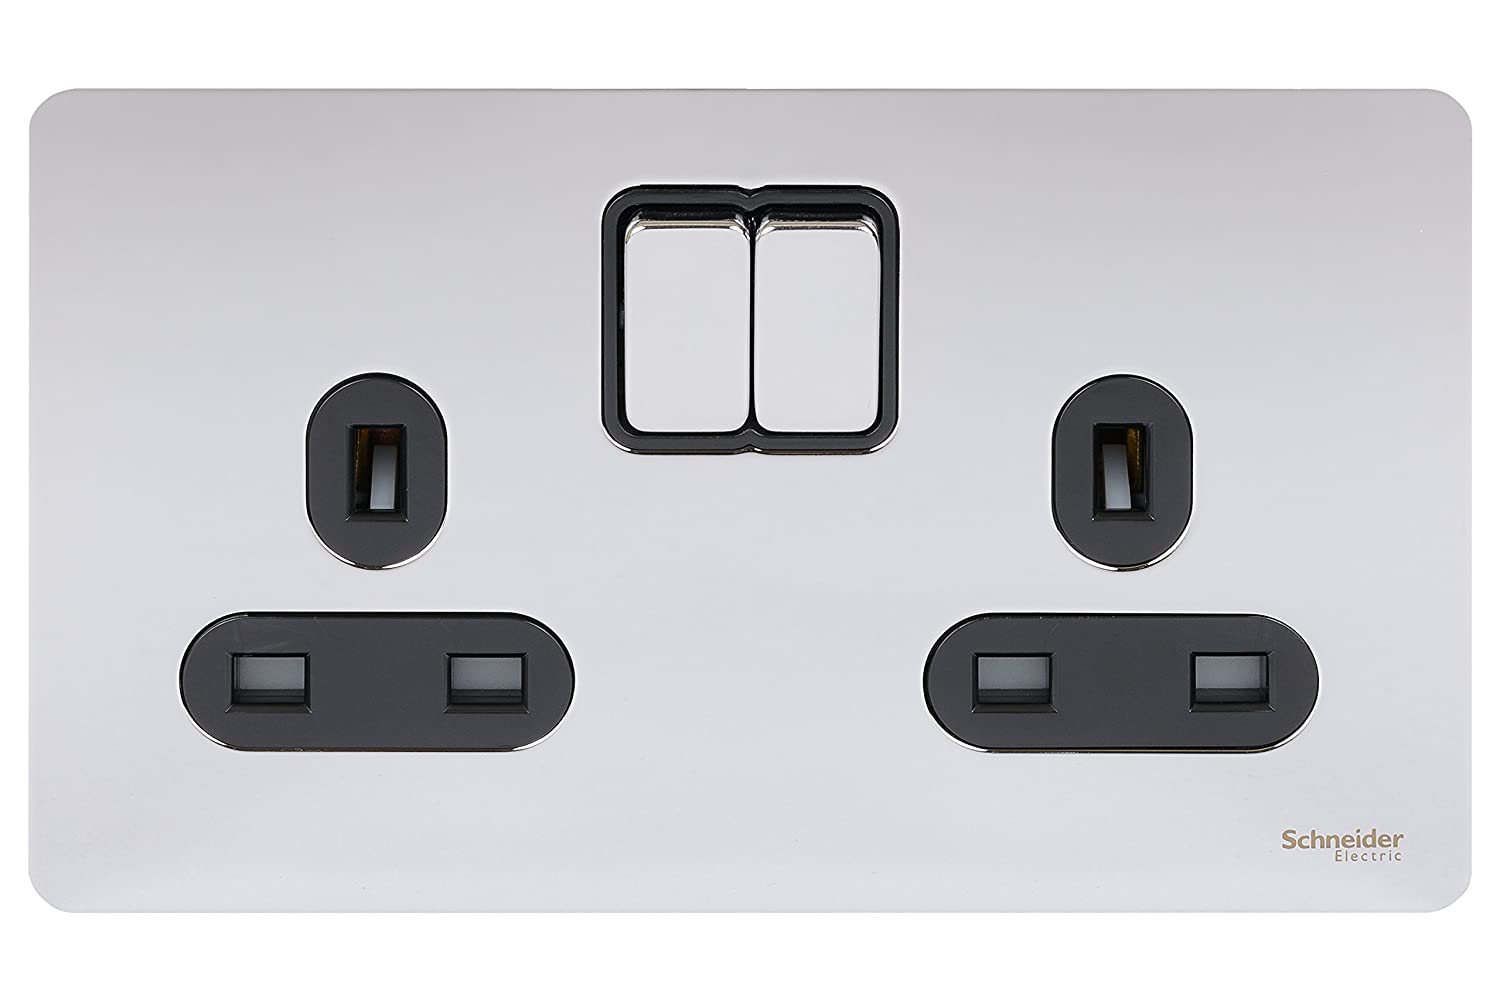 Schneider Electric GU3420BSS Ultimate Screwless Flat Plate 13a Switched Double Socket Stainless Steel Black Insert